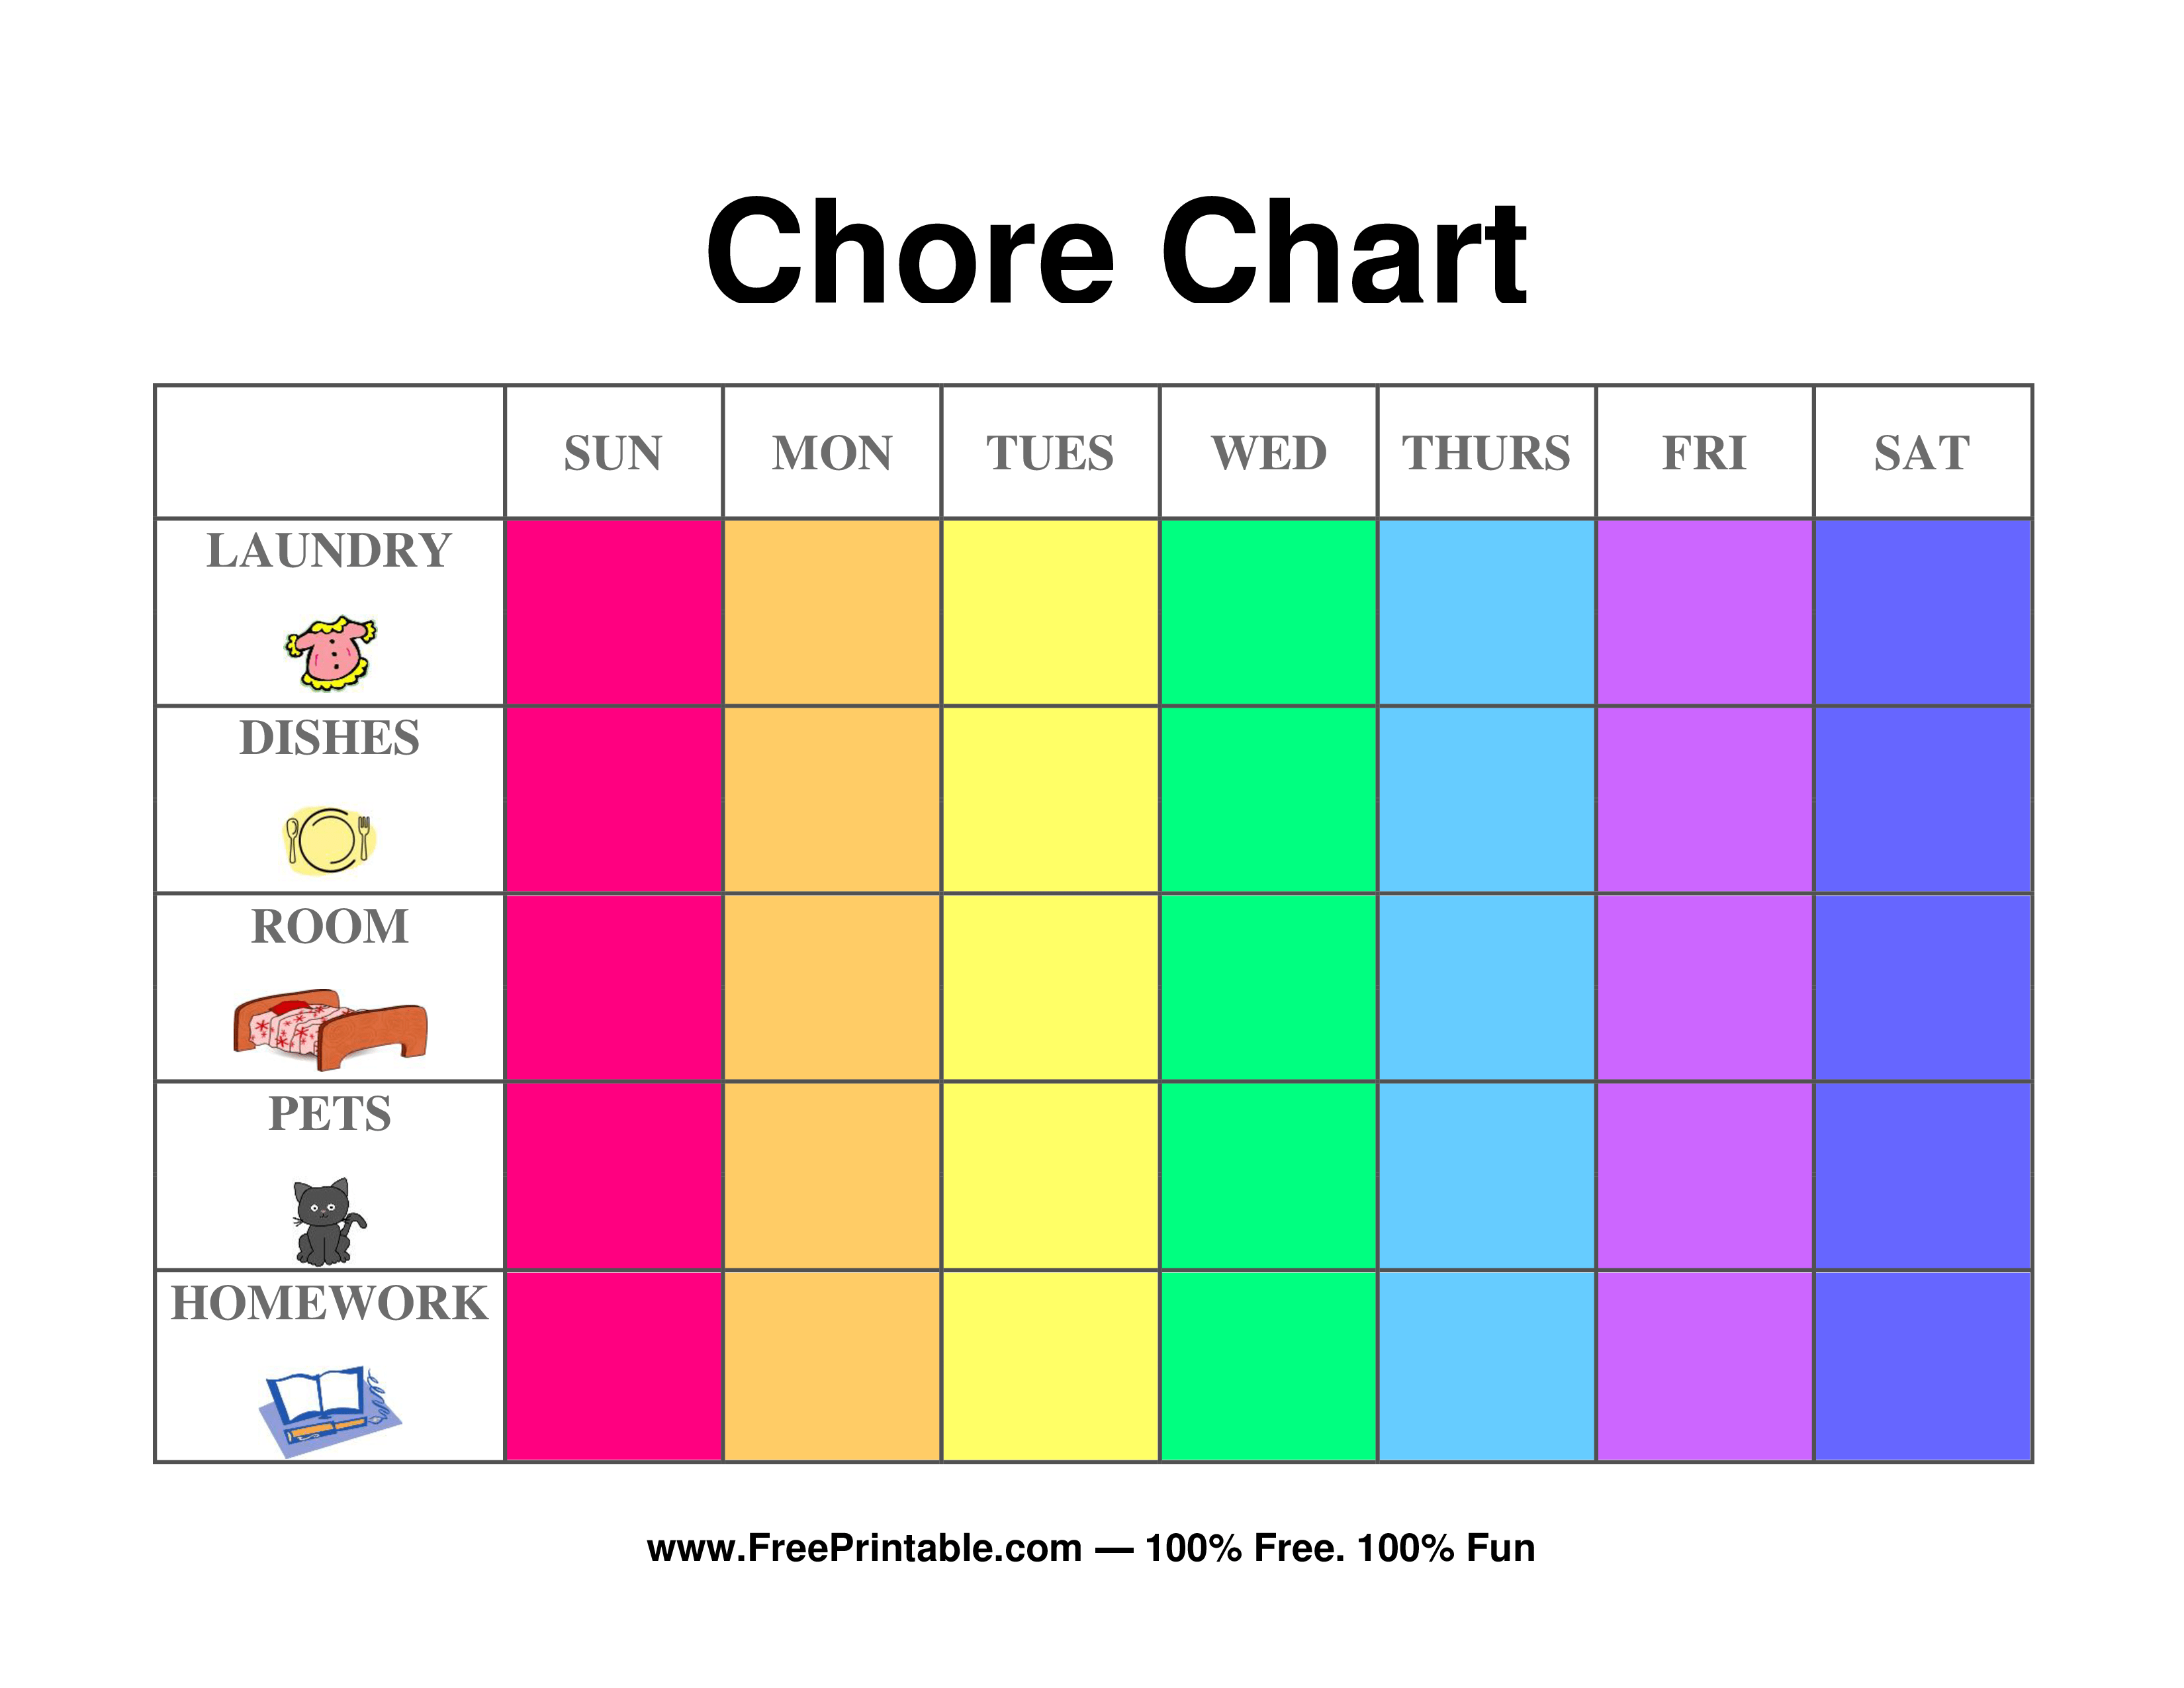 Customize Your Free Printable Illustrated Chore Chart